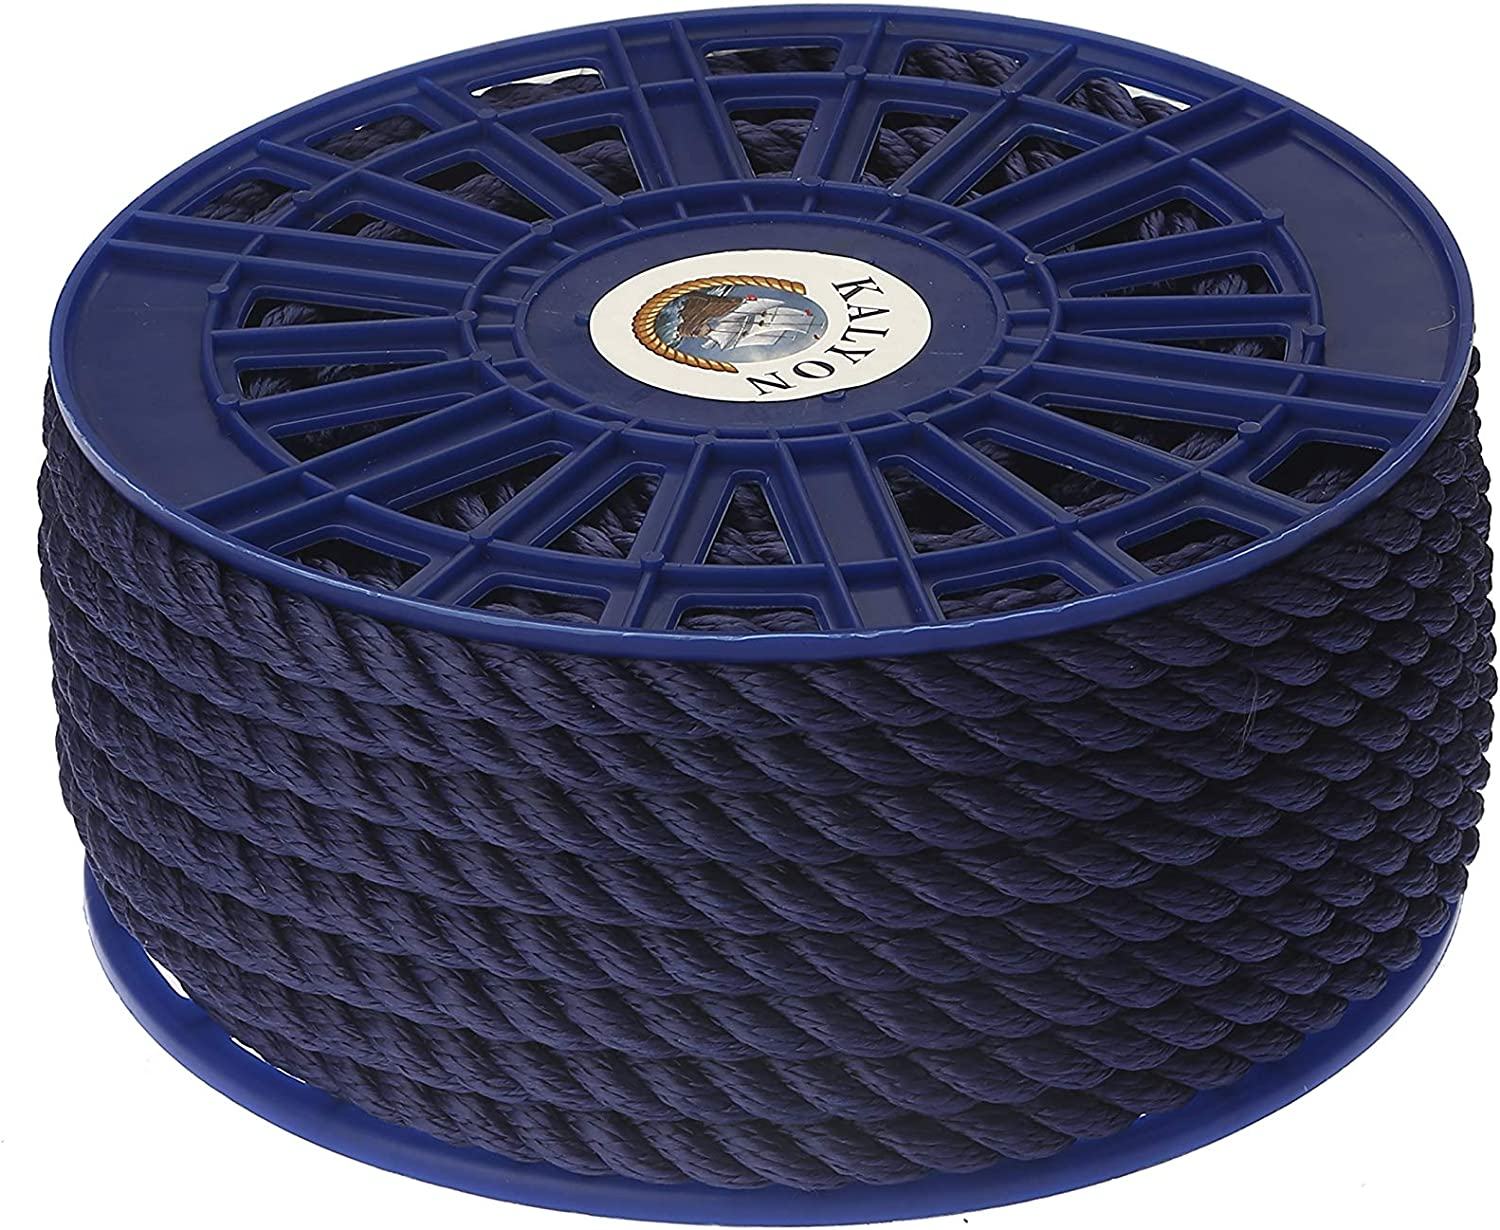 KALYON Premium Quality 3 Strands 16MM 5//8 90ft All Sizes Marine Rope Floating Polypropylene Rope Made in Turkey